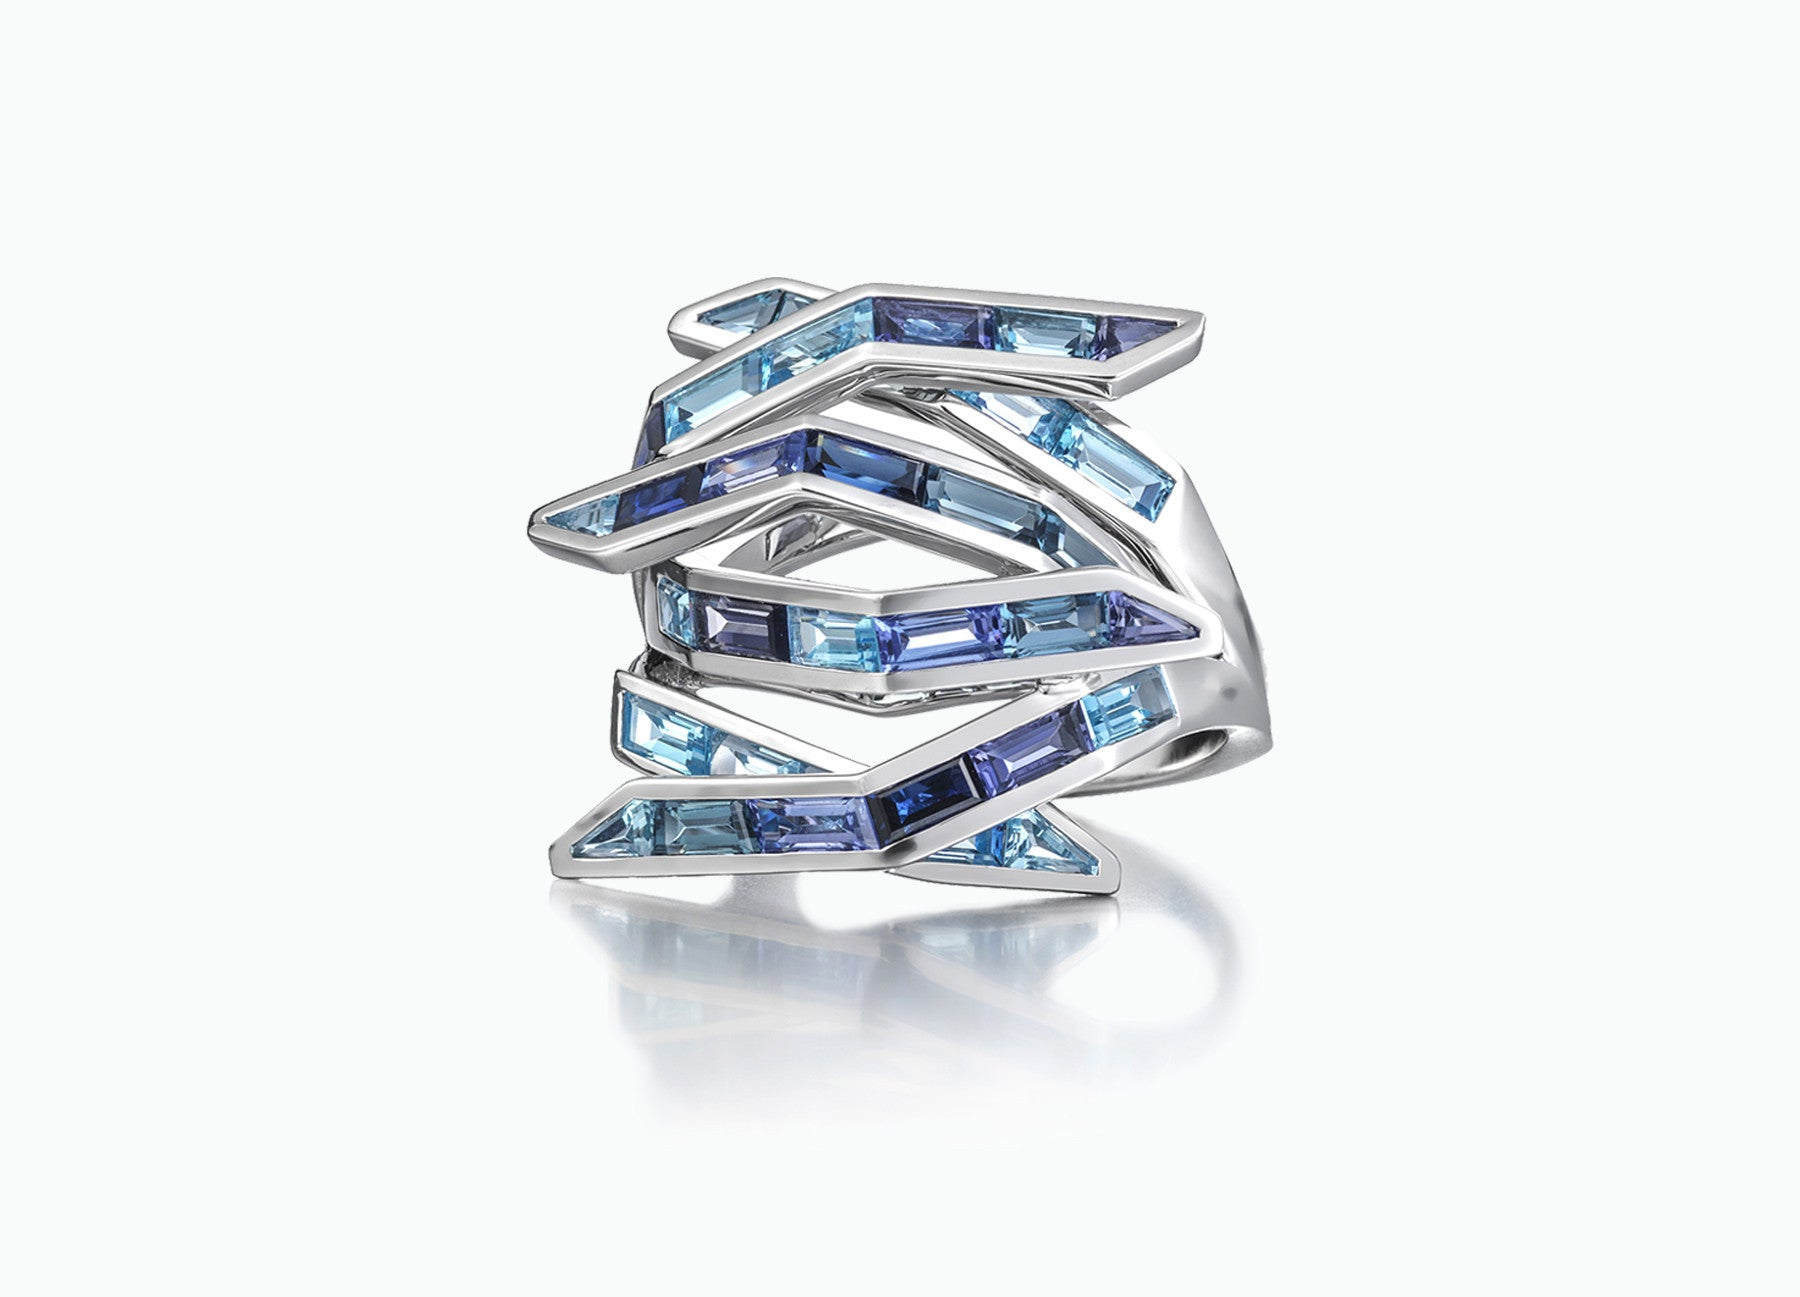 Blue Gem Bombay Ring in 18K White Gold by Tomasz Donocik front view